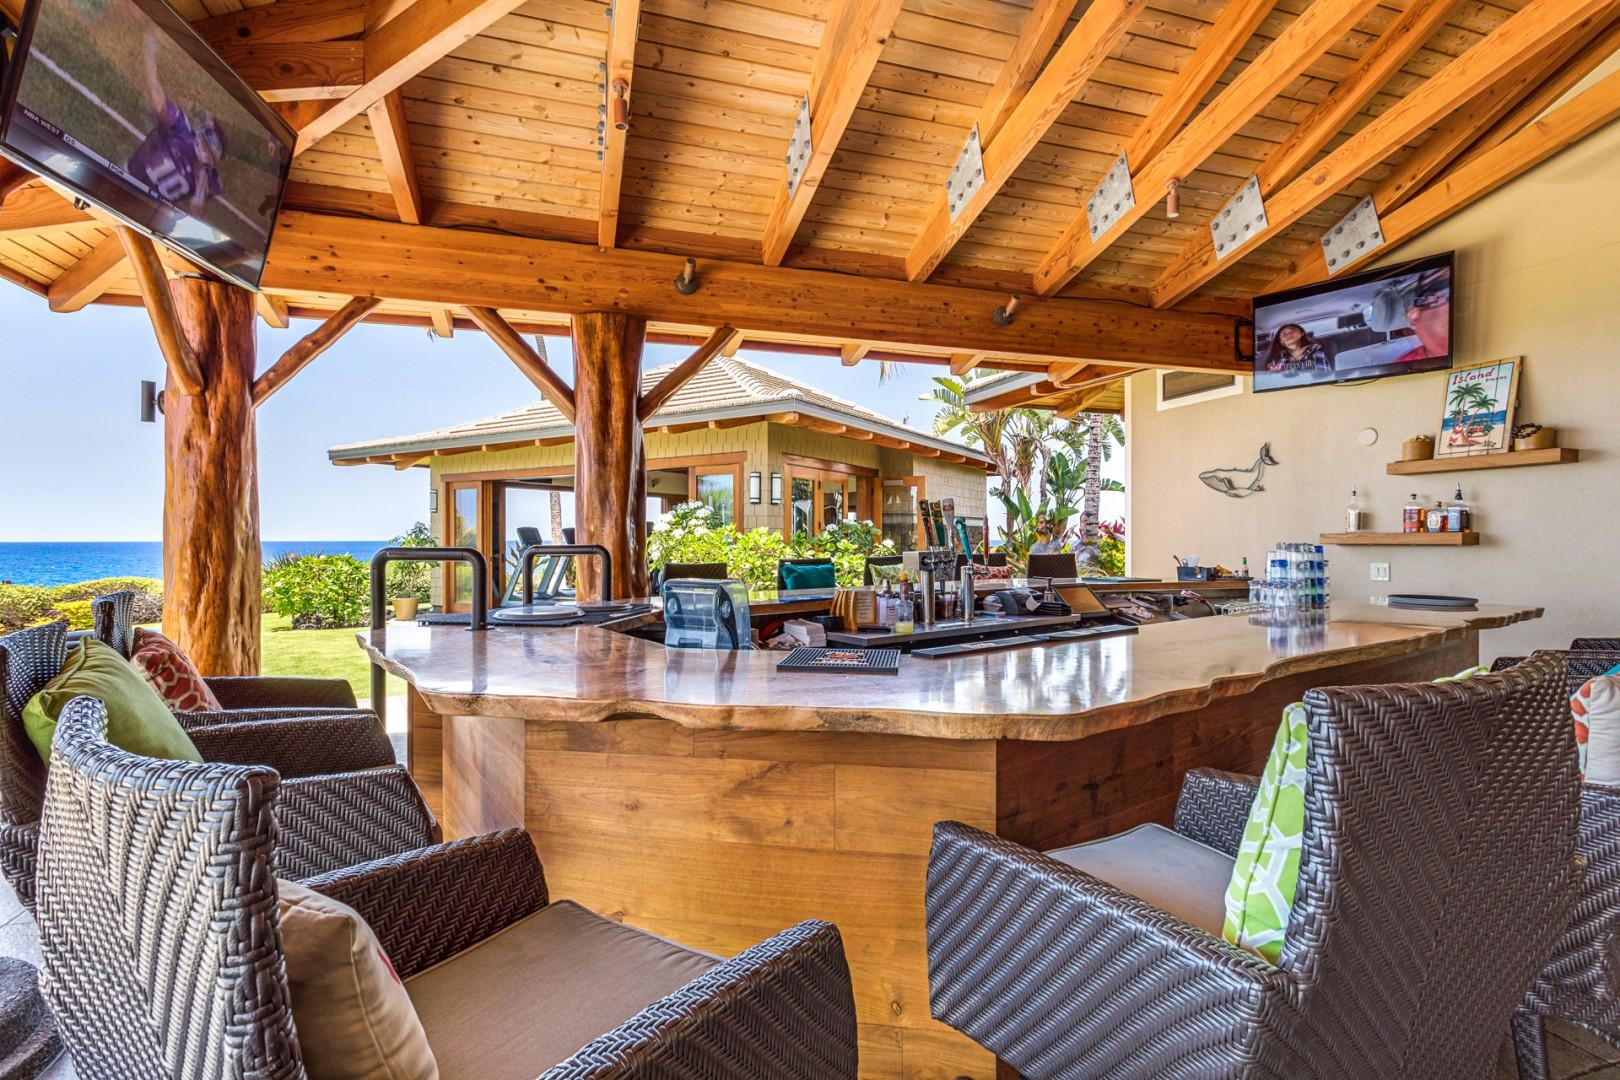 Hali'i Kai's amenities center bar and lounge seating.